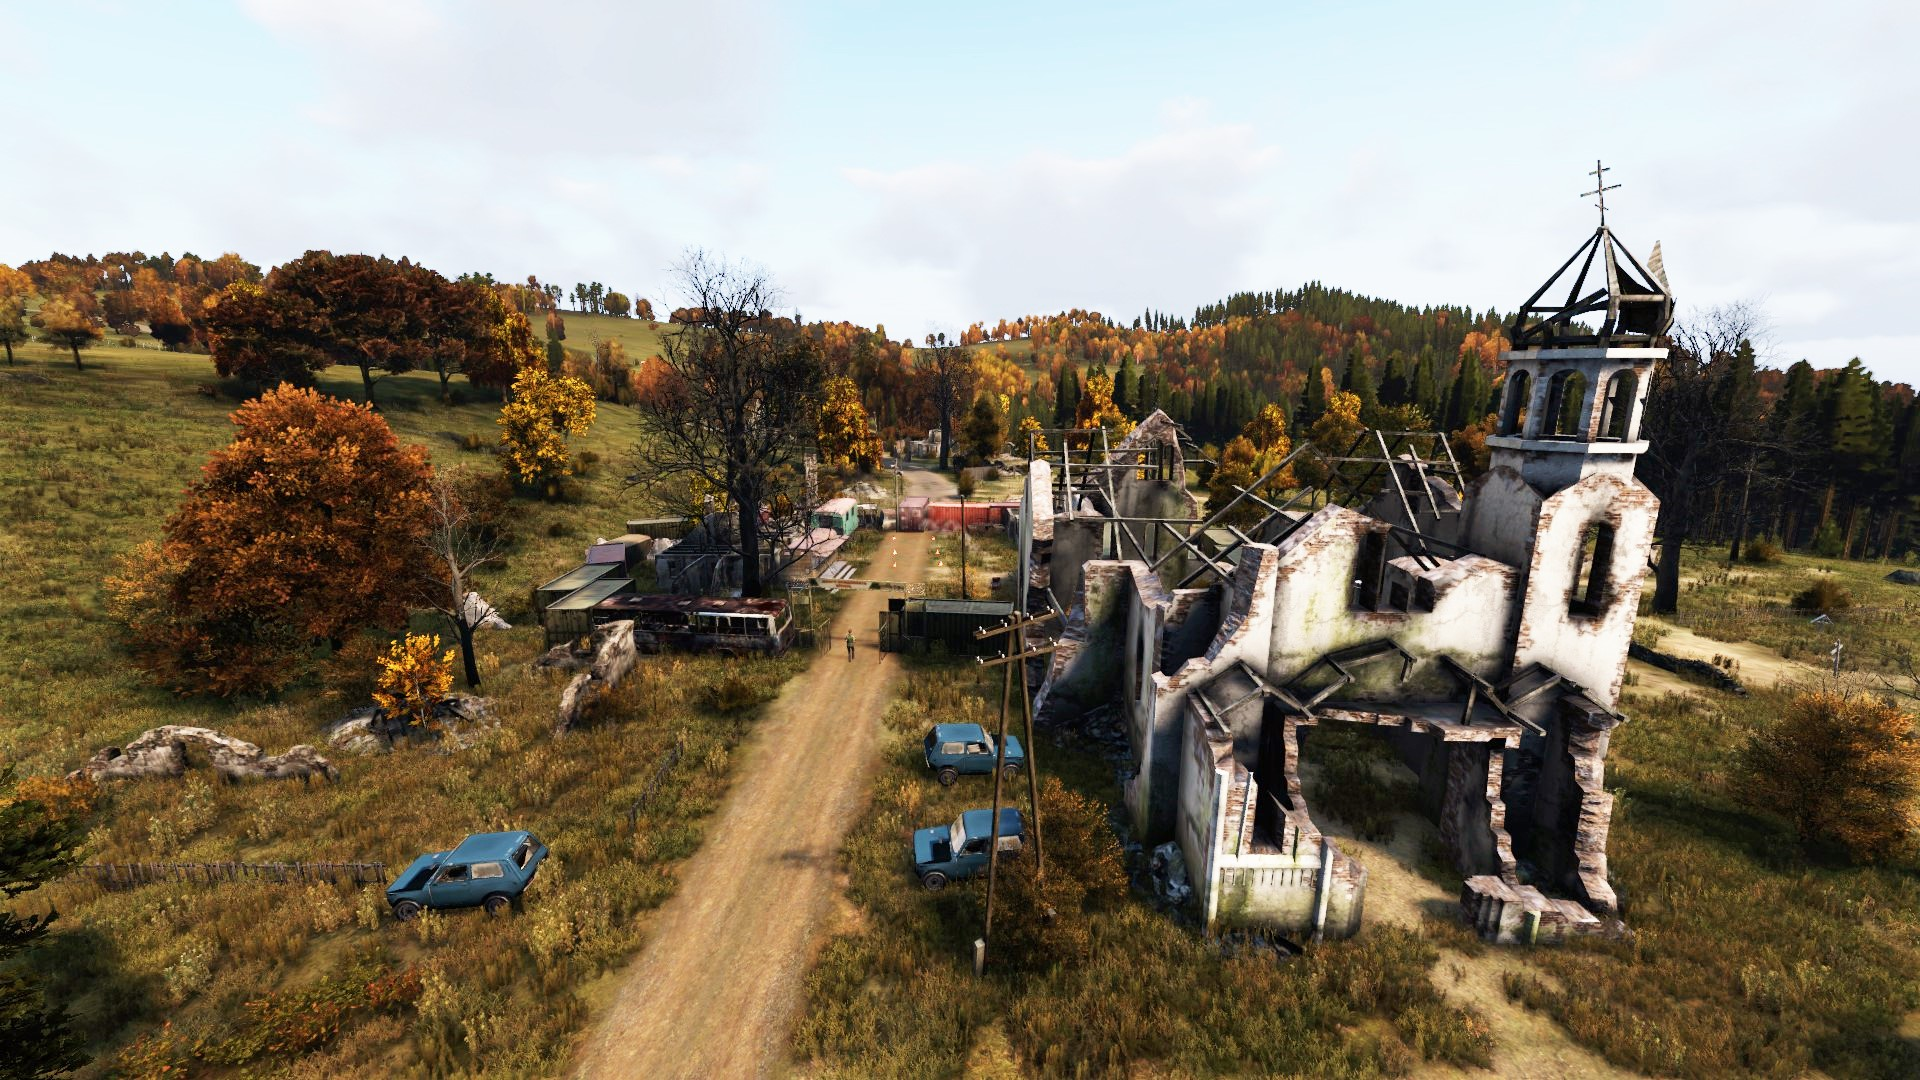 Dayz Karte Ps4.Steam Workshop Trader